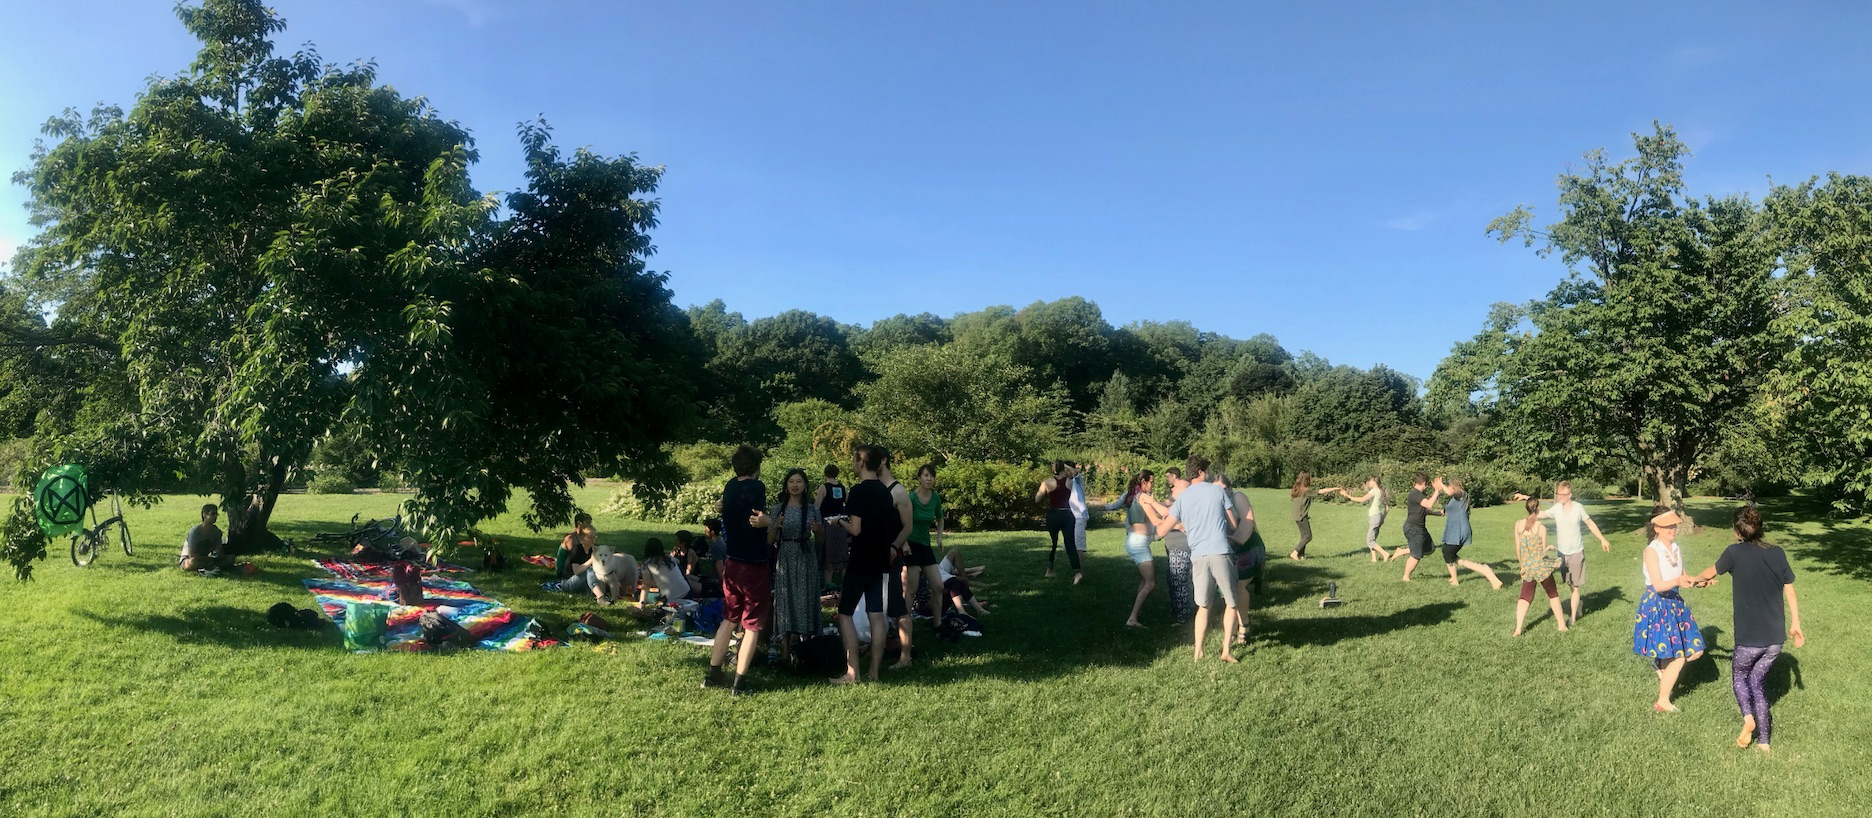 XR and Wandering Fusion Festival dance in the Arnold Arboretum.